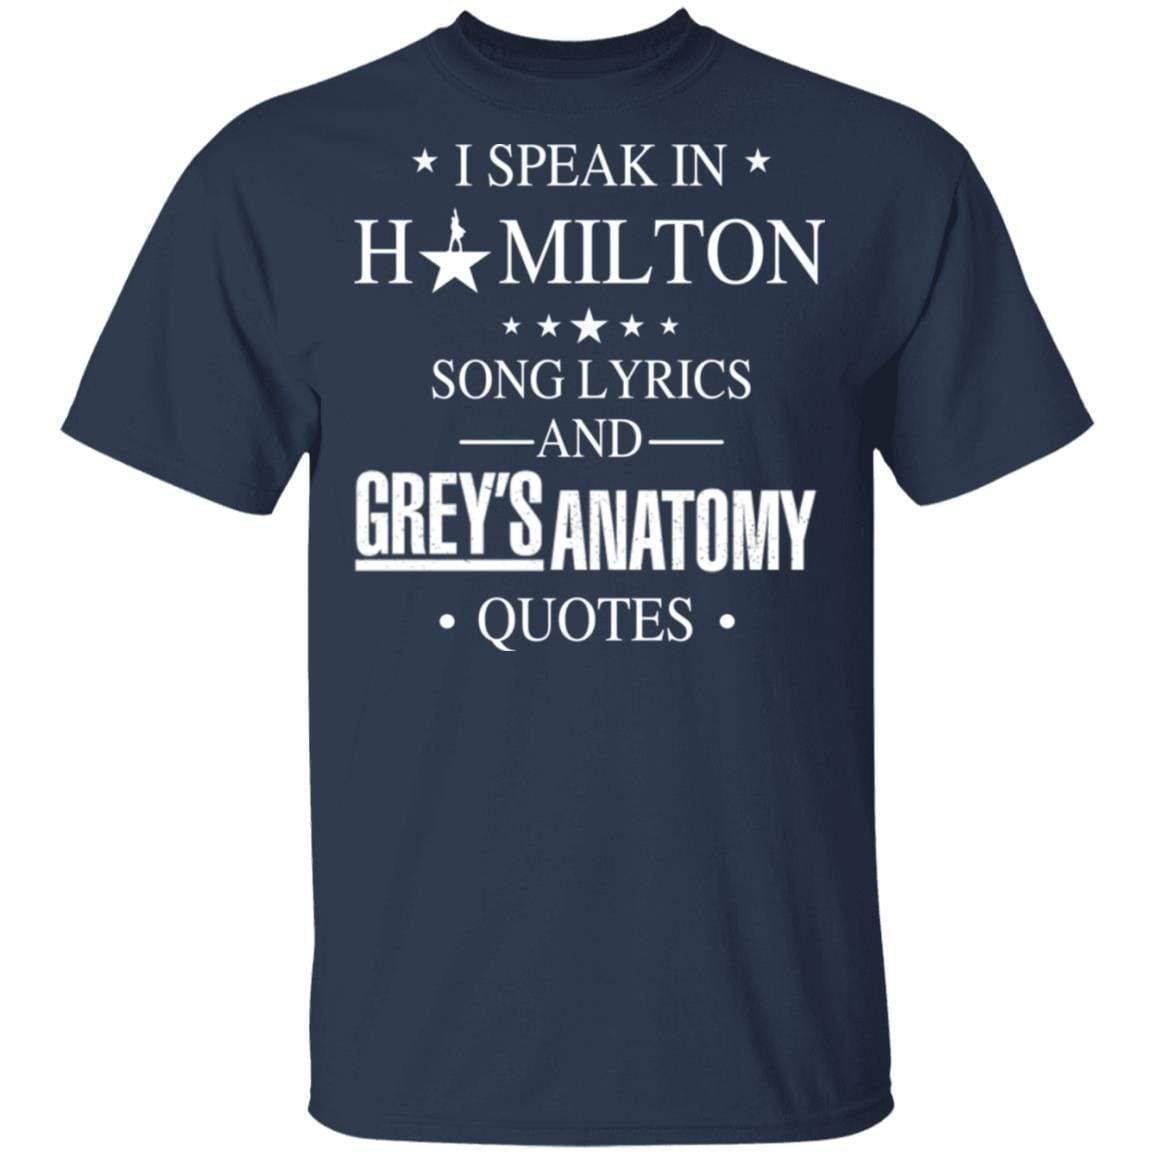 I Speak In Hamilton Song Lyrics And Grey's Anatomy Quotes T-Shirts, Hoodies 1049-9966-88445038-48248 - Tee Ript